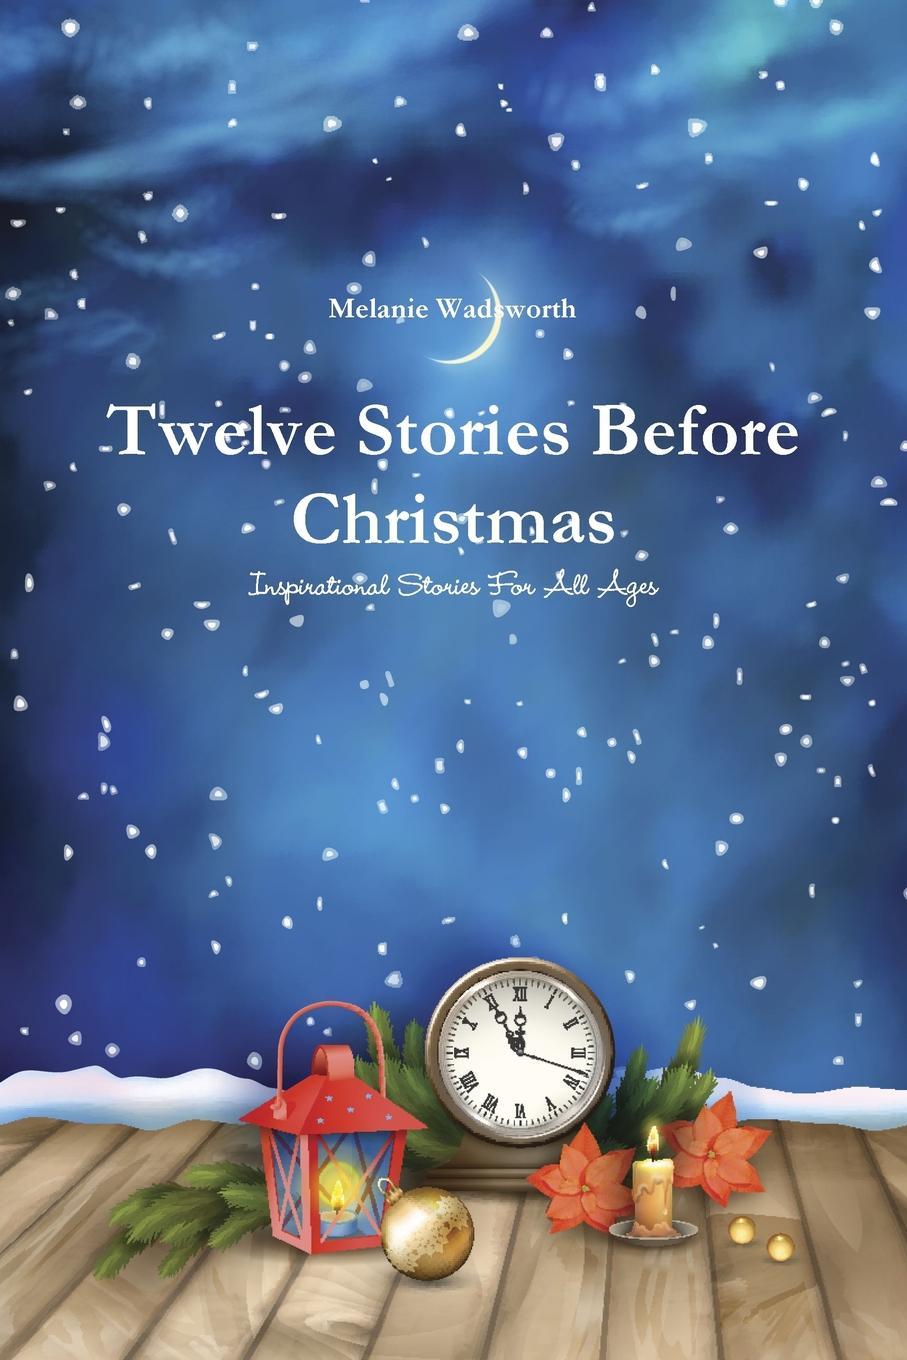 Melanie Wadsworth Twelve Stories Before Christmas. Inspirational Stories For All Ages various the night before christmas and other popular stories for children